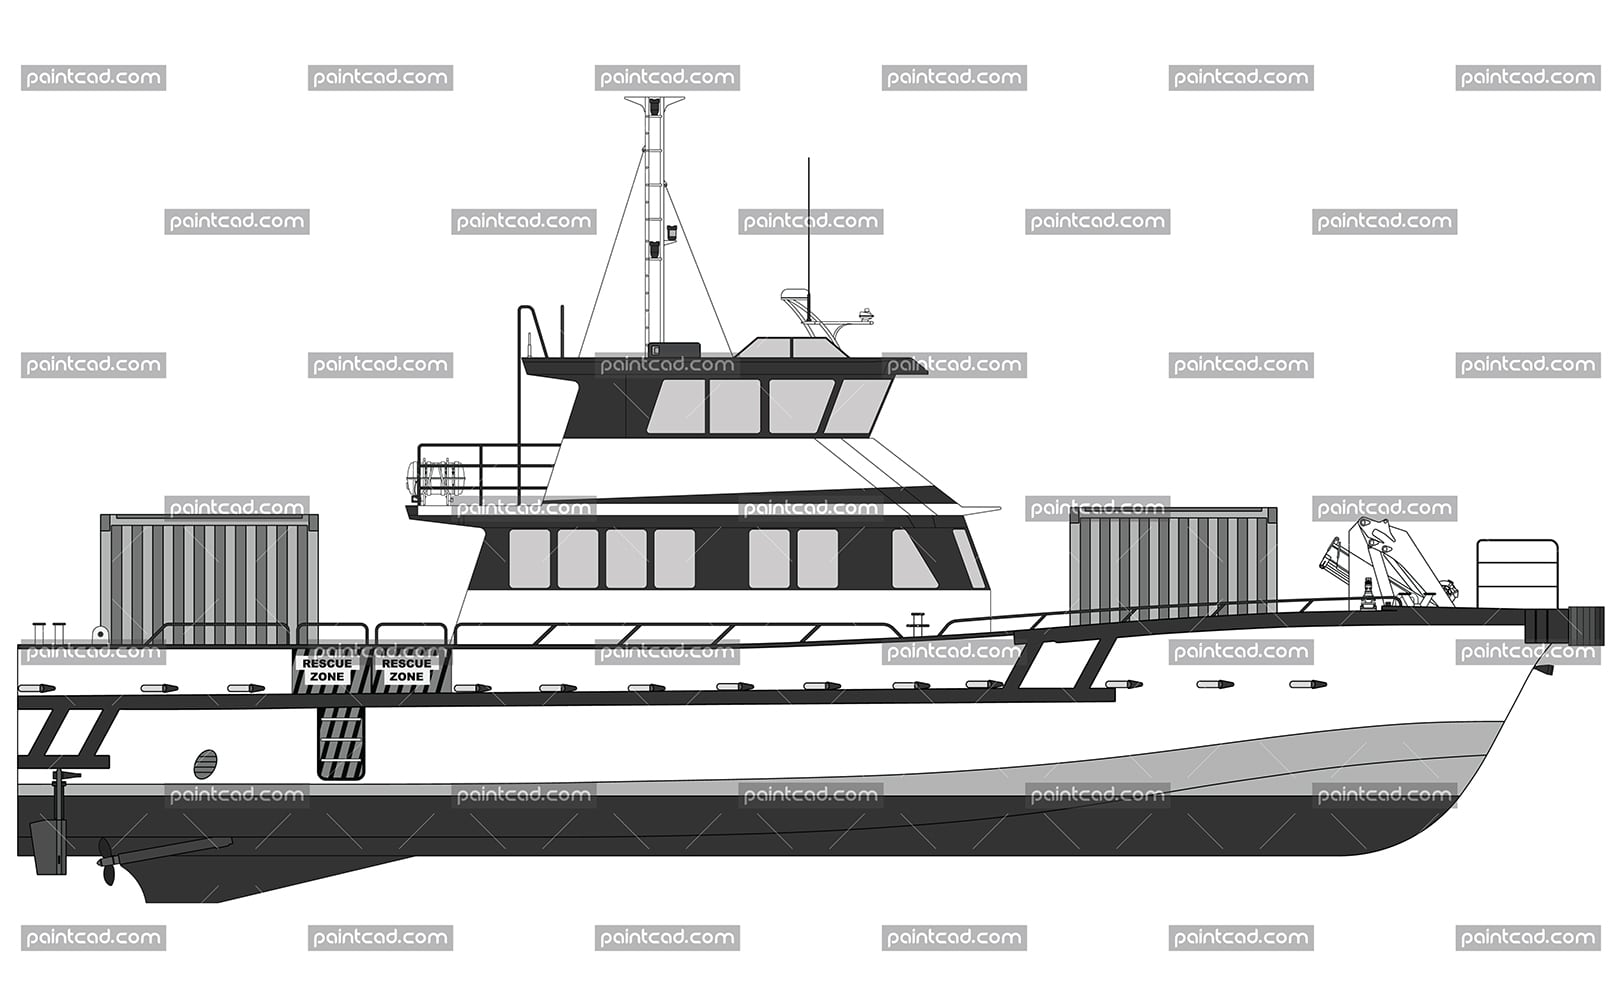 Diagram of wind farm catamaran 22 m with ISO containers - vector illustration